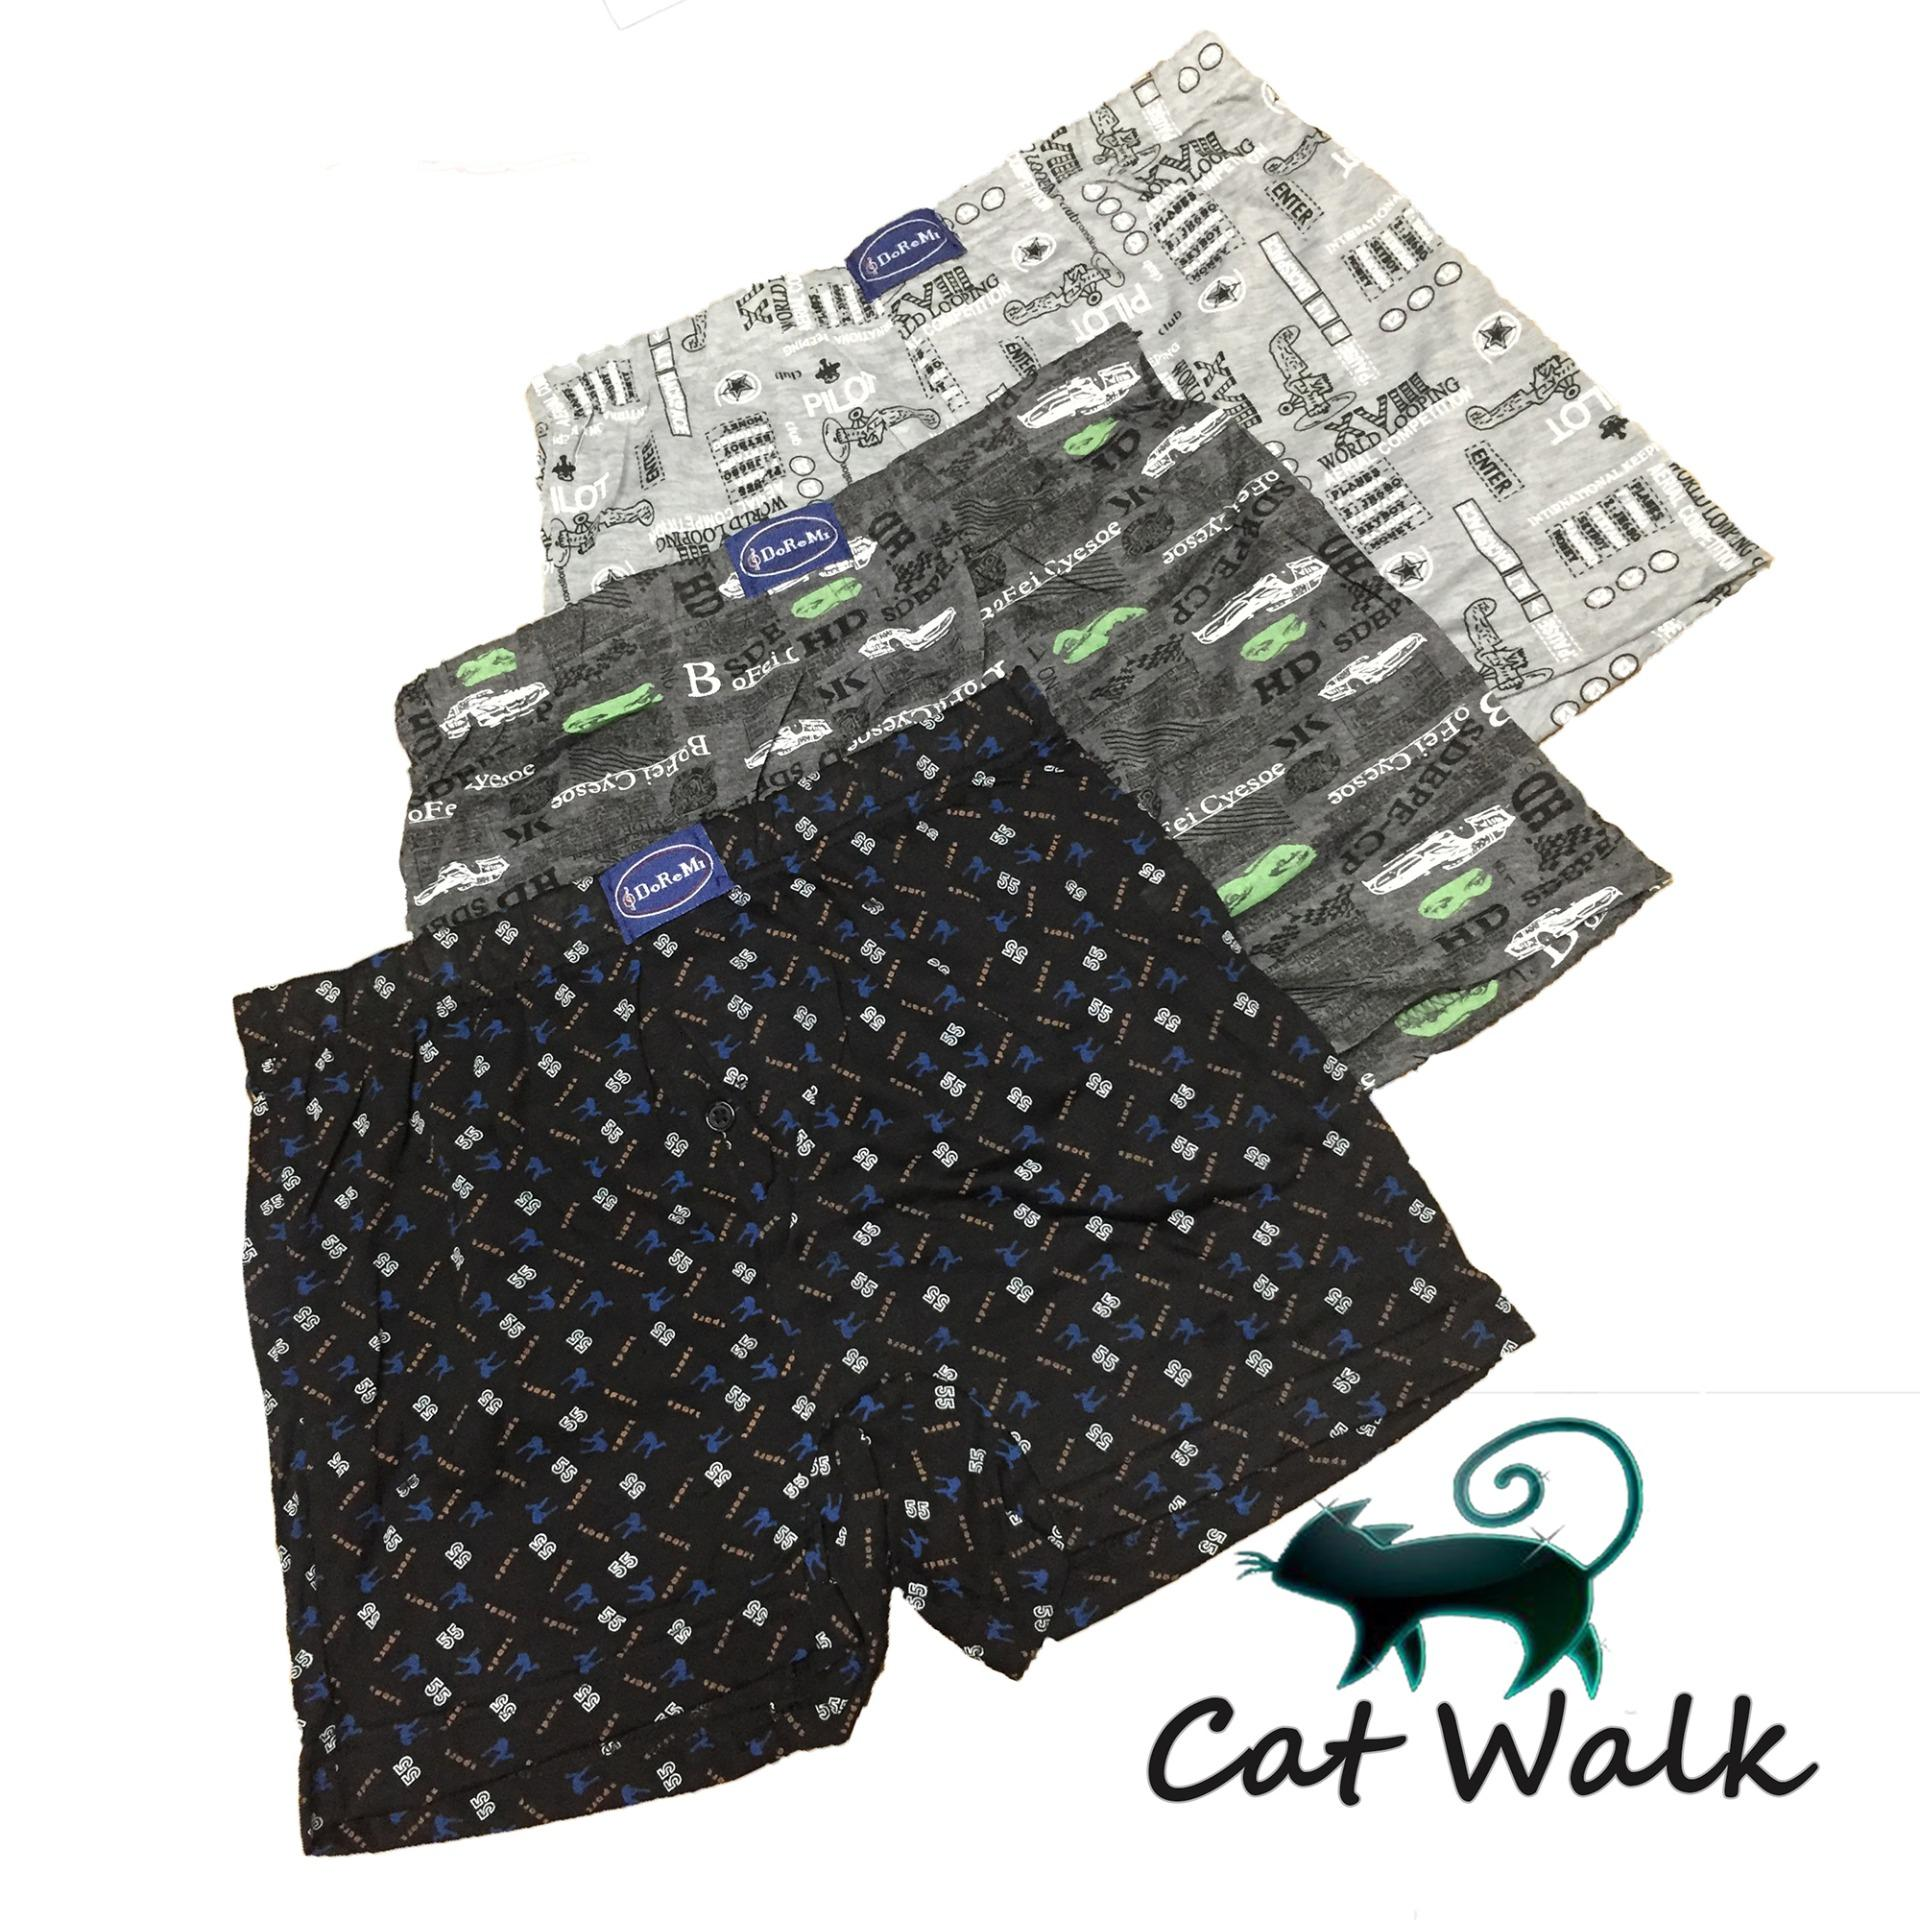 Dorimi/huangwan Boxer Shorts For Men [set Of 6] By Cat Walk.